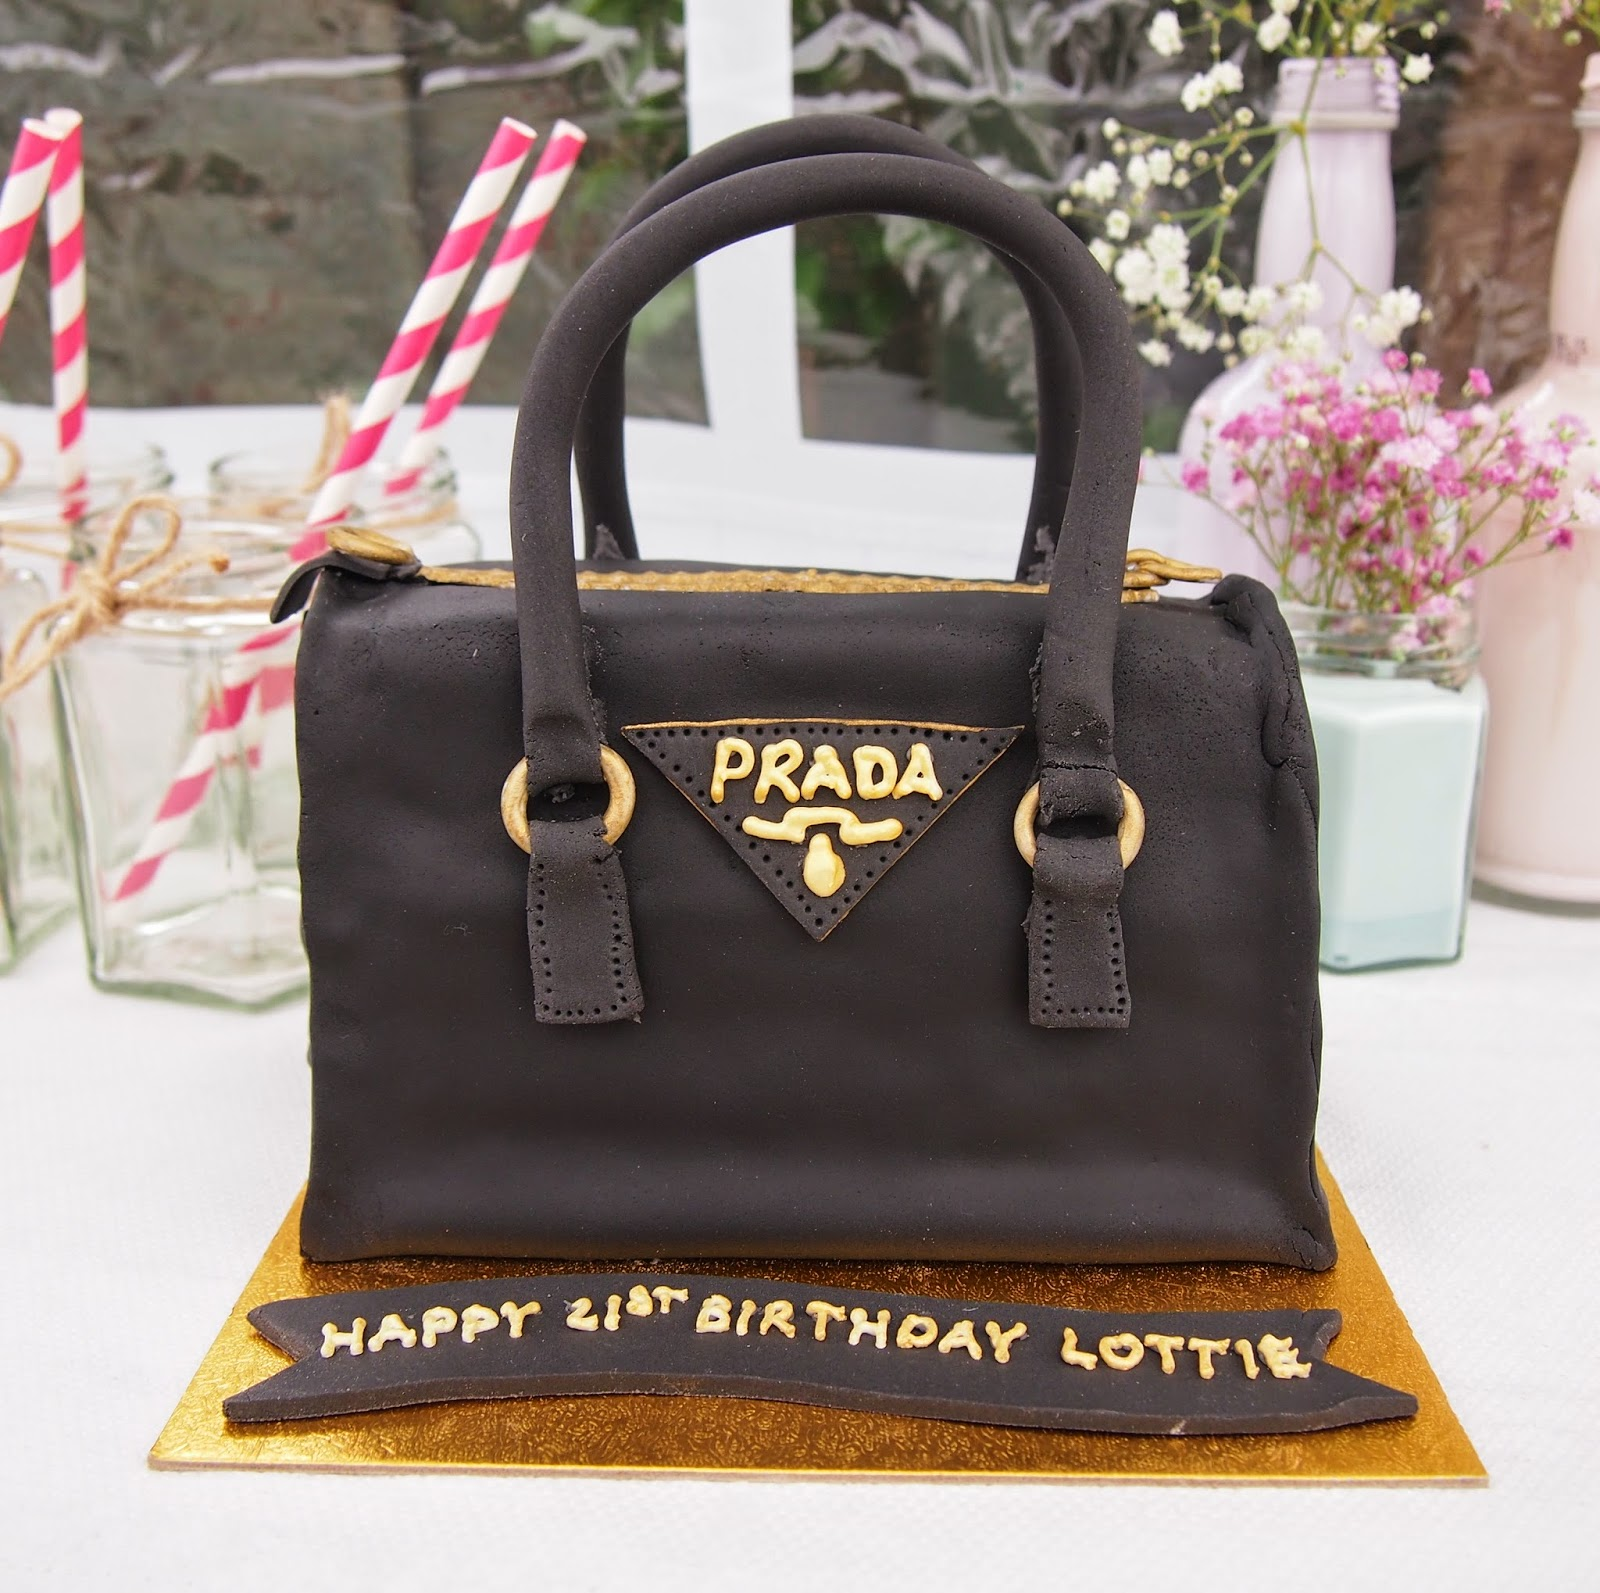 Lovely Lottie My Son Owen S Friend Is Celebrating Her 21st Birthday This Week And She Really Does Know Handbags I Hope Likes Cake Ve